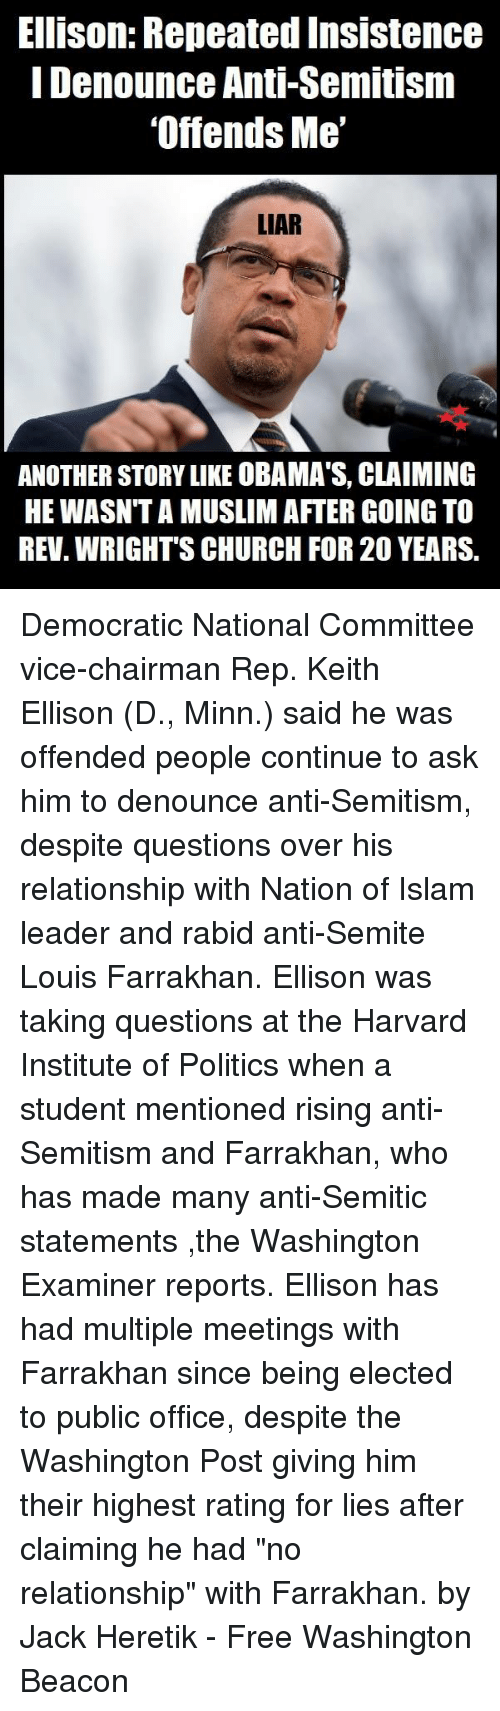 """Church, Memes, and Muslim: Ellison: Repeated Insistence  I Denounce Anti-Semitism  'Offends Me  LIAR  ANOTHER STORY LIKE OBAMA'S, CLAIMING  HE WASNT A MUSLIM AFTER GOING TO  REV. WRIGHT'S CHURCH FOR 20 YEARS. Democratic National Committee vice-chairman Rep. Keith Ellison (D., Minn.) said he was offended people continue to ask him to denounce anti-Semitism, despite questions over his relationship with Nation of Islam leader and rabid anti-Semite Louis Farrakhan.  Ellison was taking questions at the Harvard Institute of Politics when a student mentioned rising anti-Semitism and Farrakhan, who has made many anti-Semitic statements ,the  Washington Examiner reports. Ellison has had multiple meetings with Farrakhan since being elected to public office, despite the Washington Post giving him their highest rating for lies after claiming he had """"no relationship"""" with Farrakhan.  by Jack Heretik - Free Washington Beacon"""